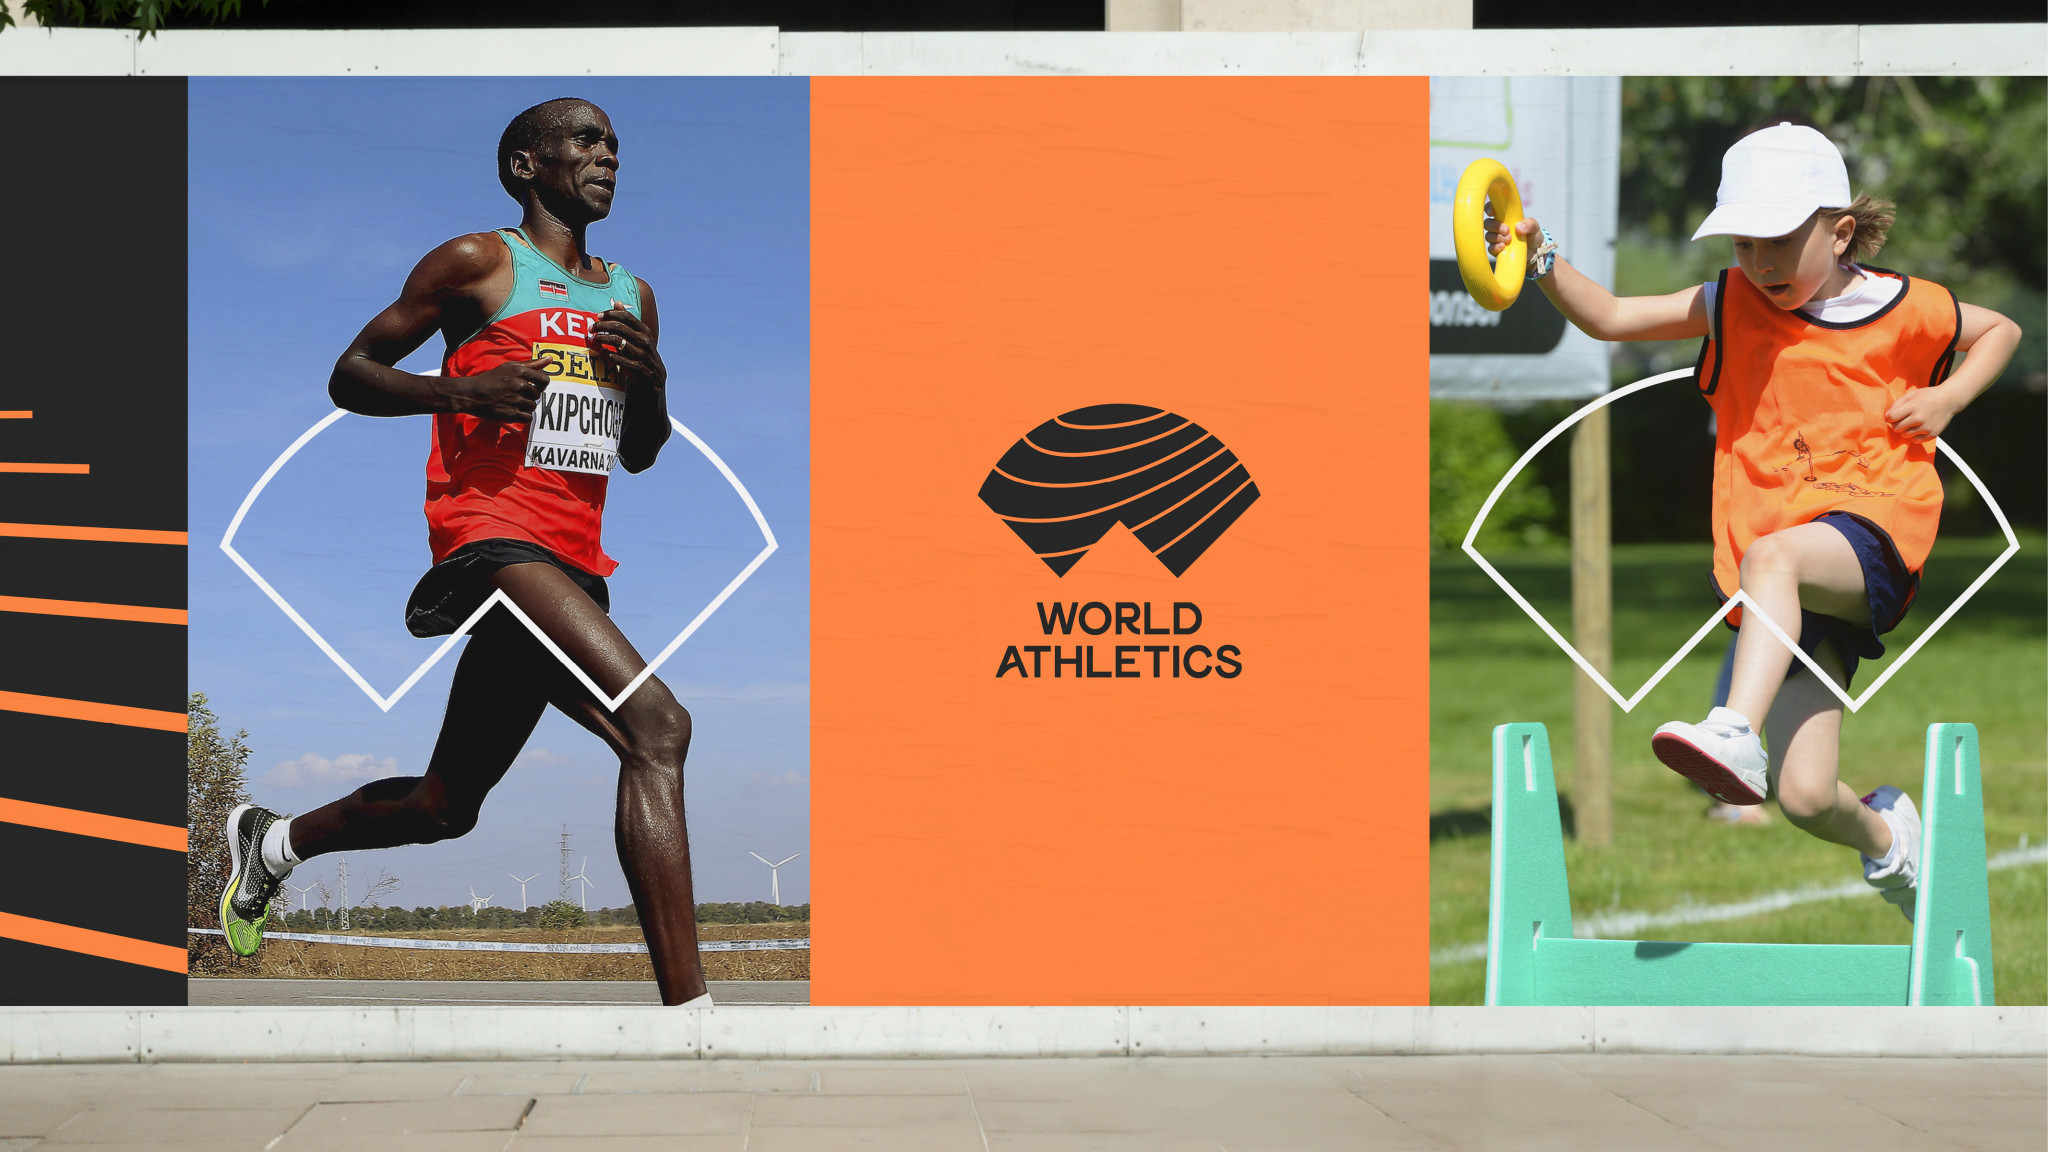 The IAAF claims the rebrand to World Athletics builds upon the organisation's restructuring and governance reform agenda to represent a modern, creative and positive face for the sport ©IAAF